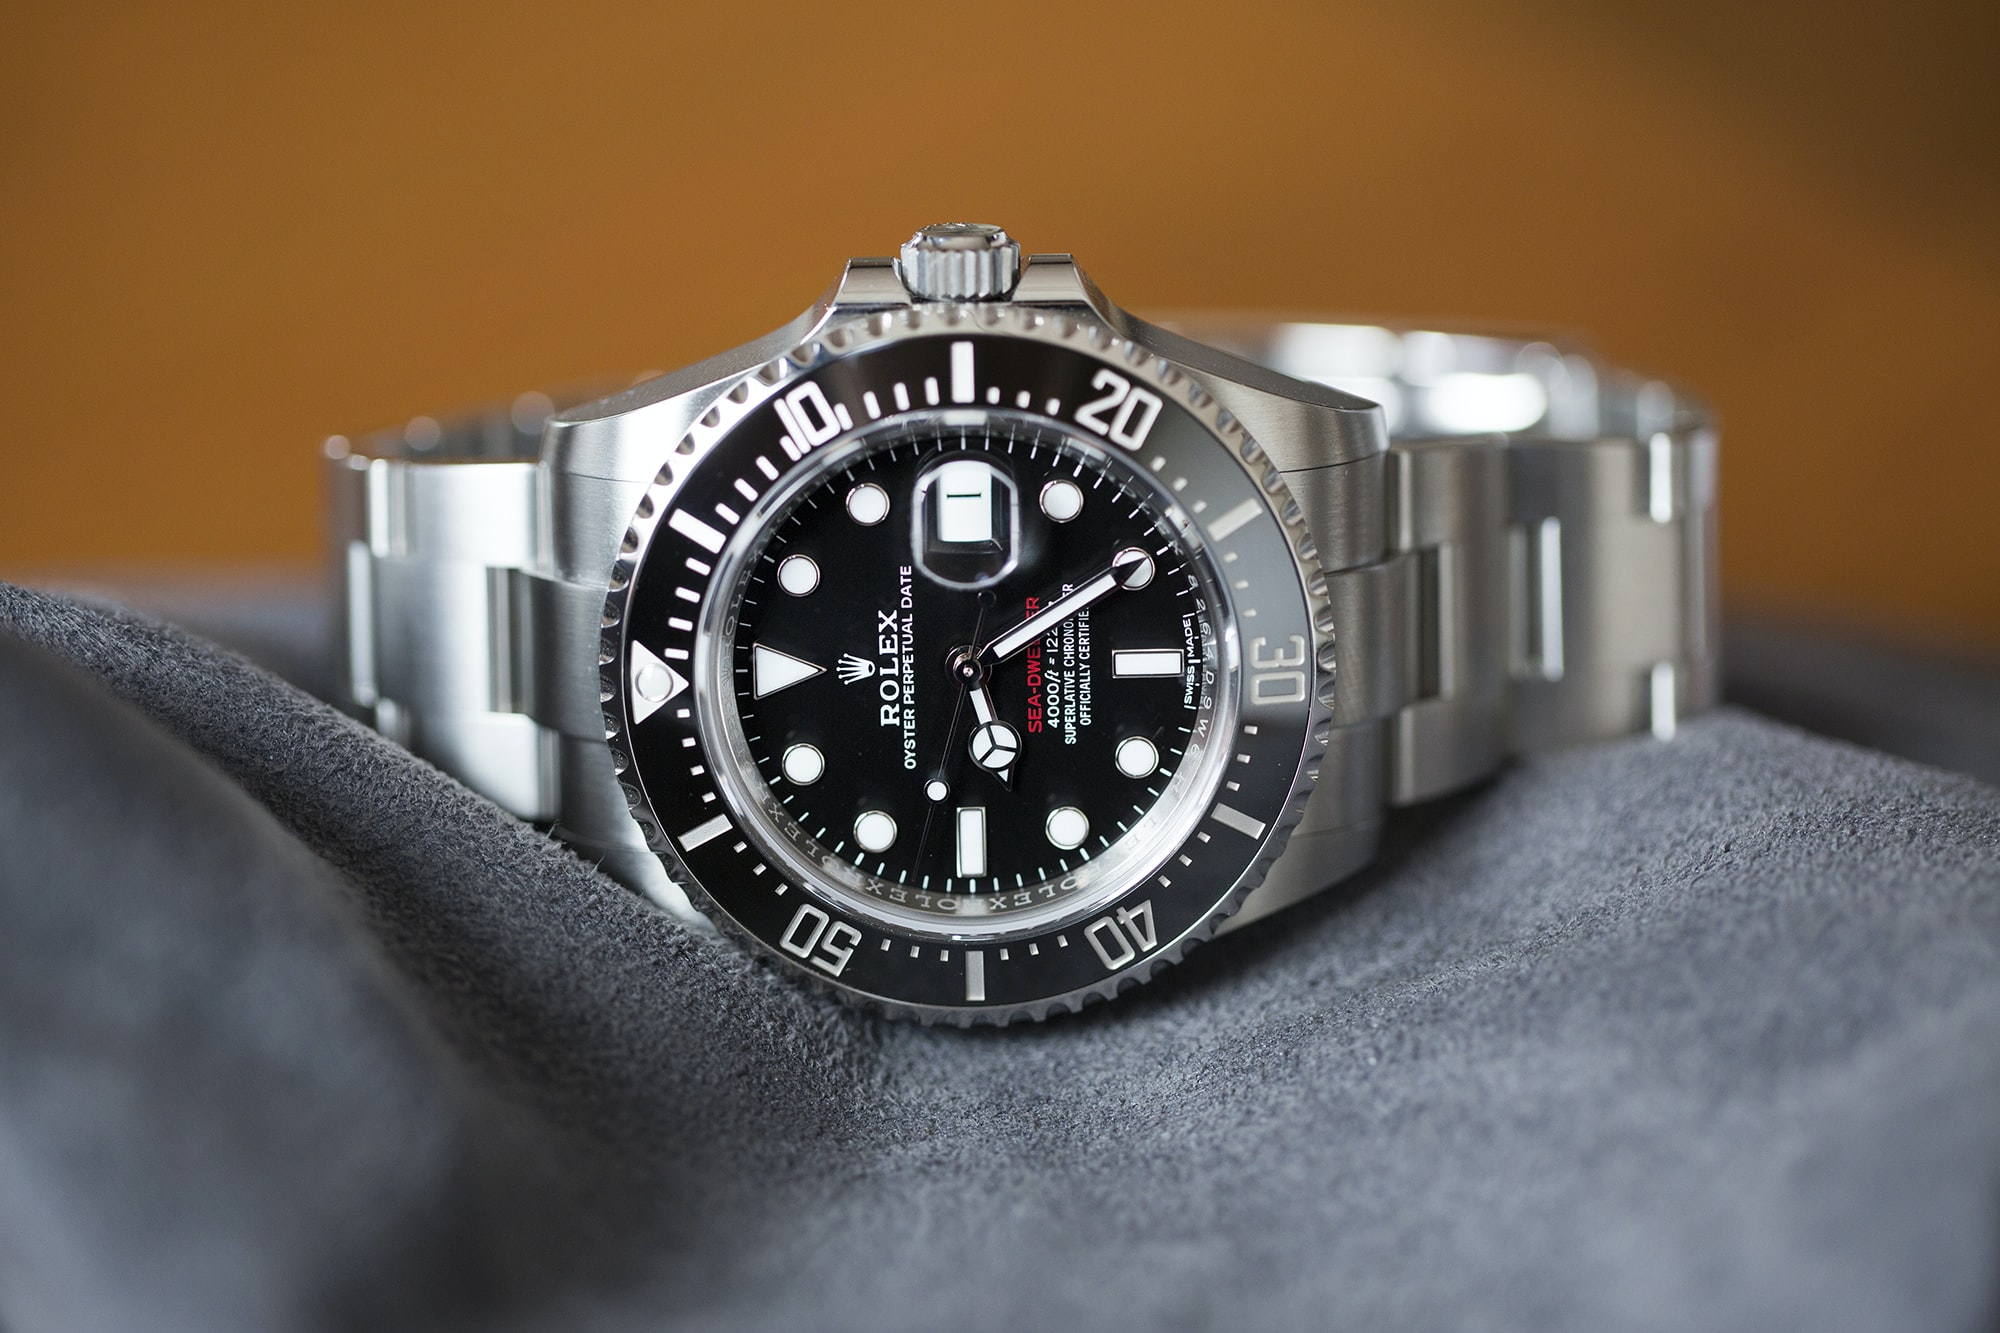 The reference 126600 Sea-Dweller is 43mm in diameter. A Week On The Wrist: The Rolex Sea-Dweller Reference 126600 A Week On The Wrist: The Rolex Sea-Dweller Reference 126600  20011410 copy